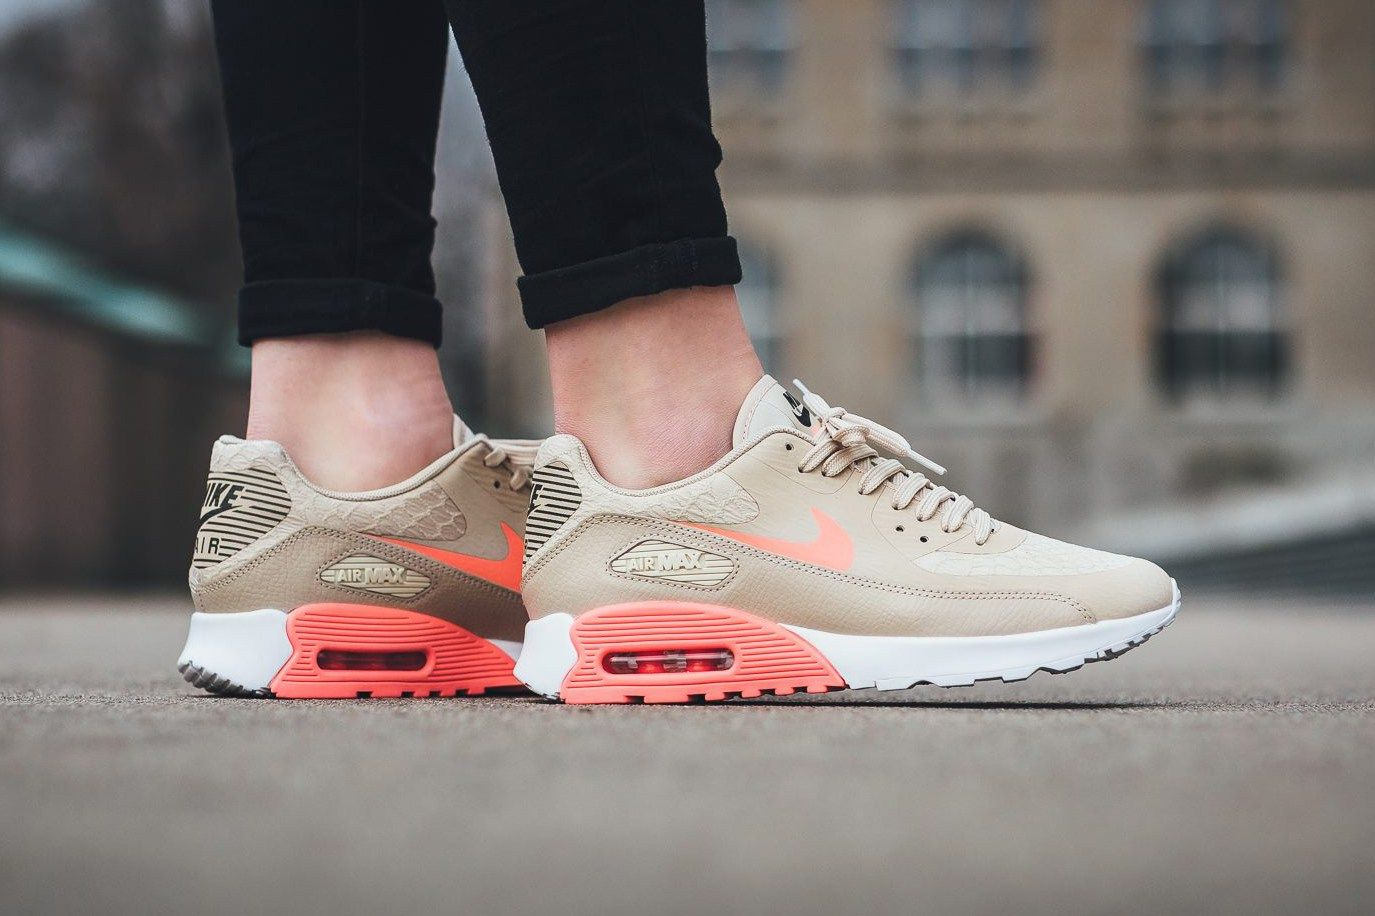 WOMEN'S NIKE AIR MAX 90 ULTRA 2.0 SHOE - Oatmeal/White/Dark Grey/Lava Glow